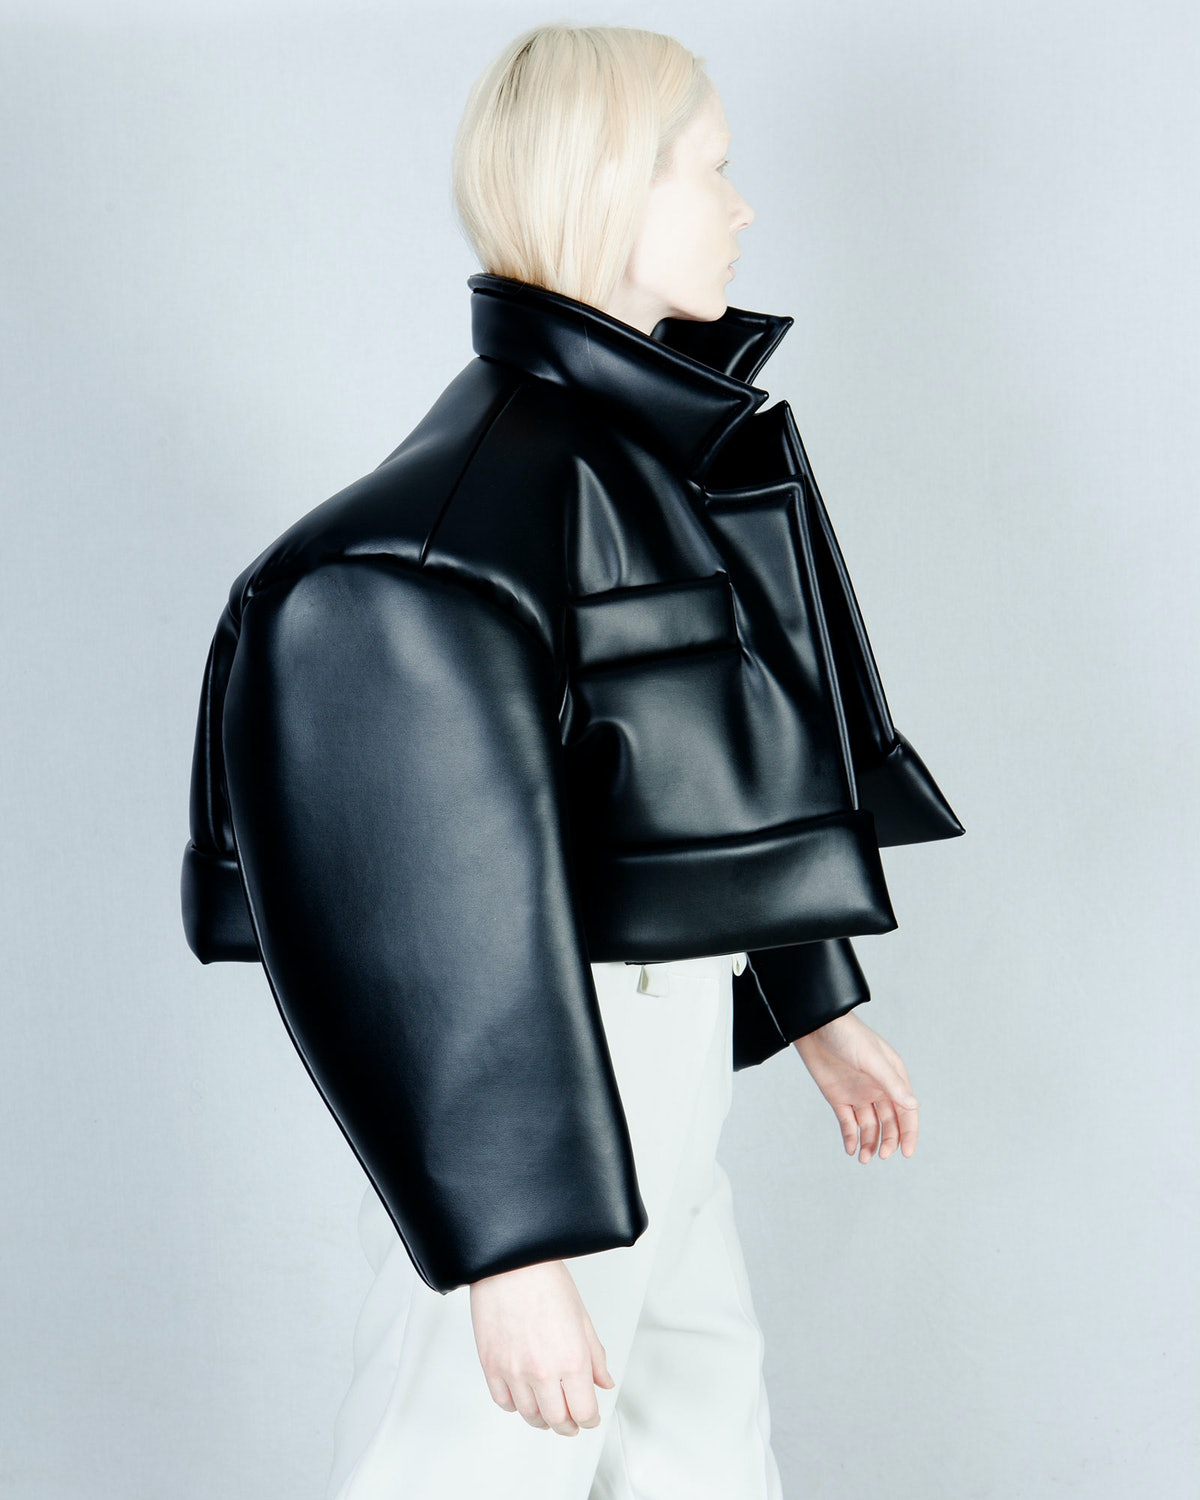 Melitta Baumeister's AW 14 collection